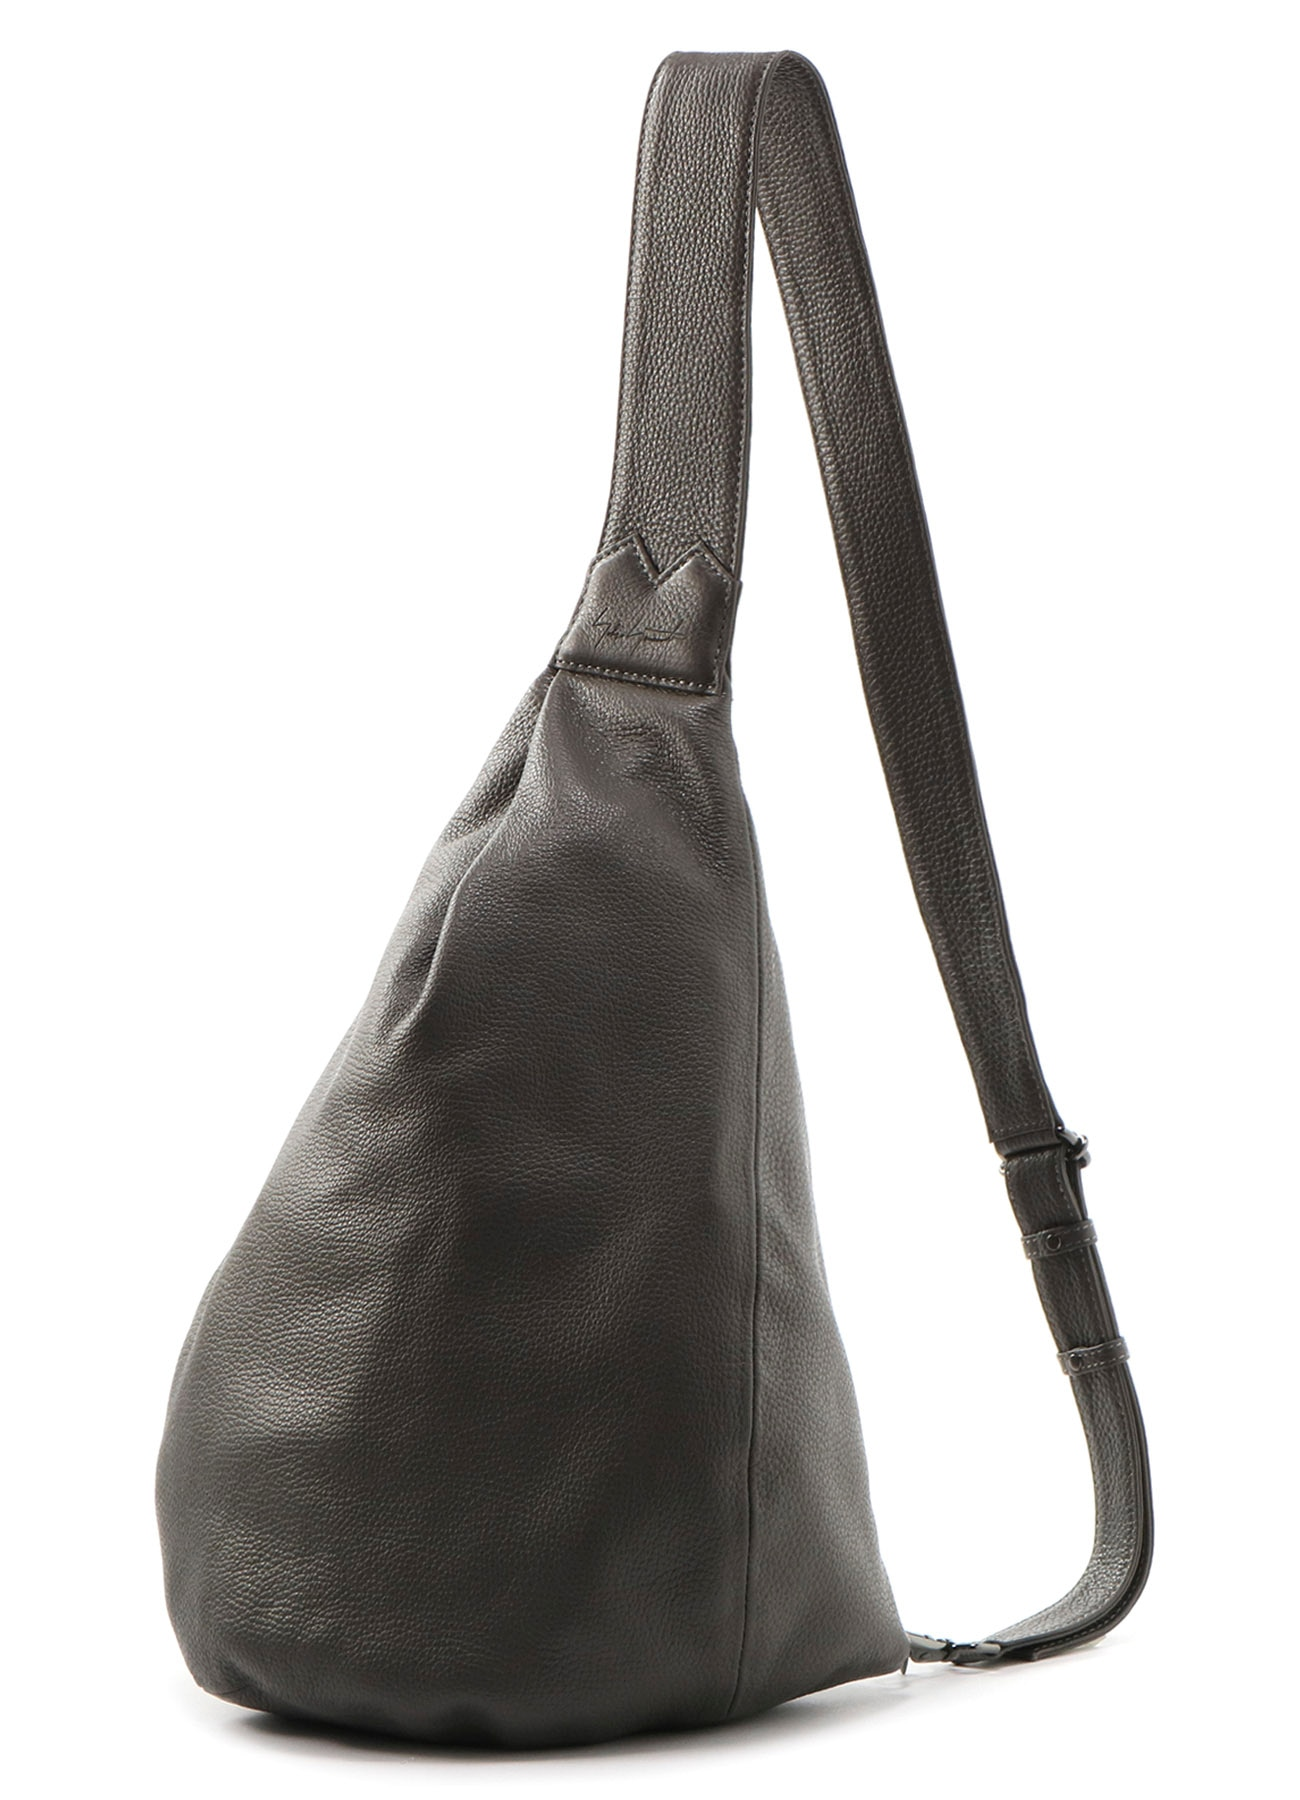 Y Cross Body Shoulder Bag